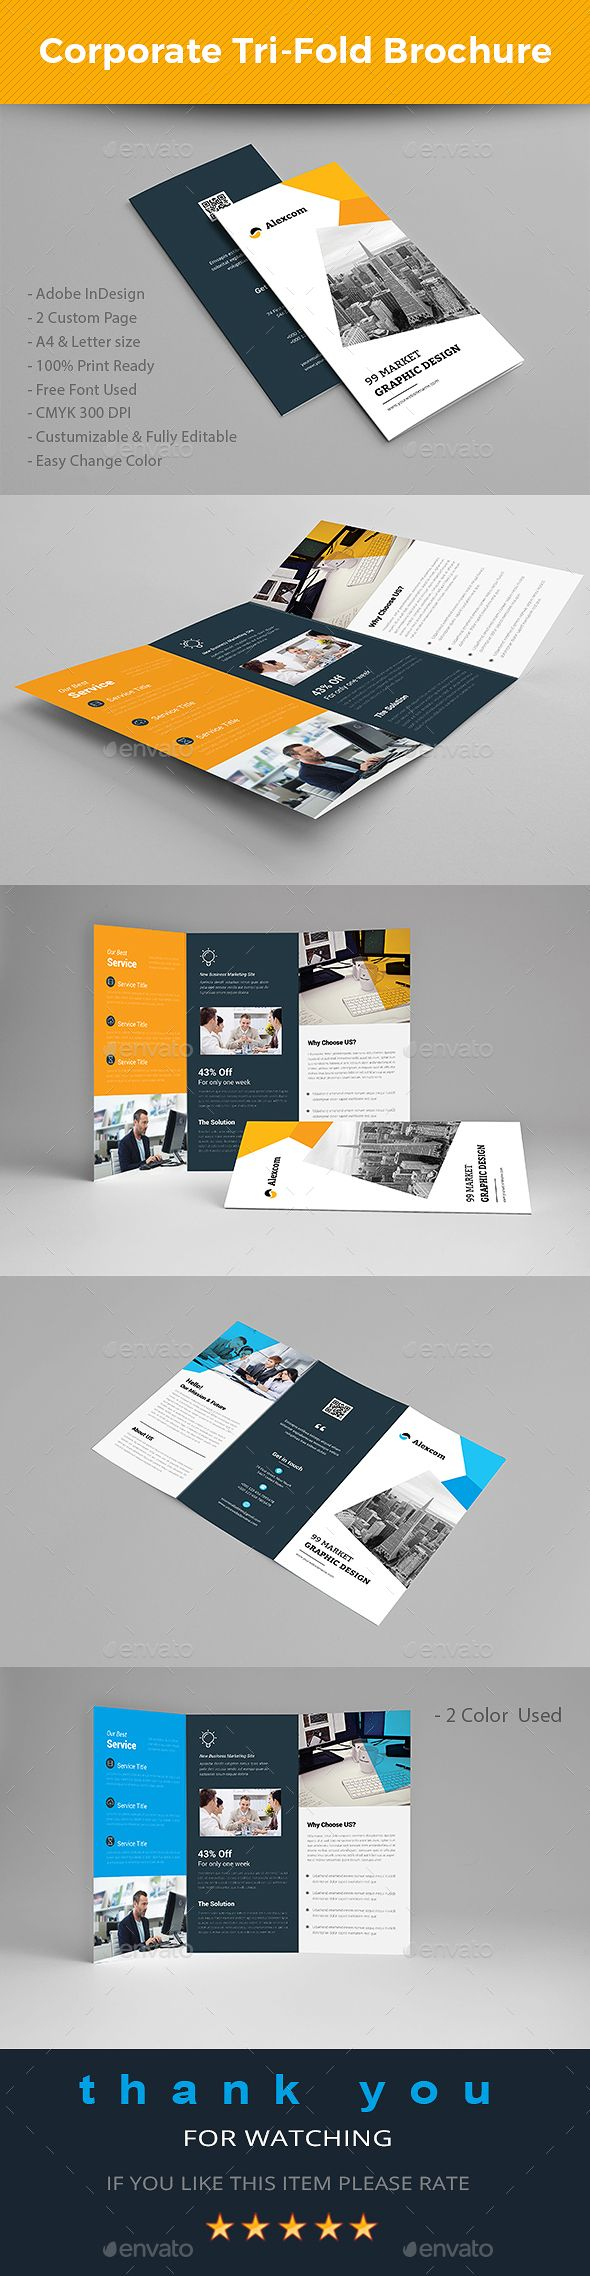 letter size tri fold brochure template